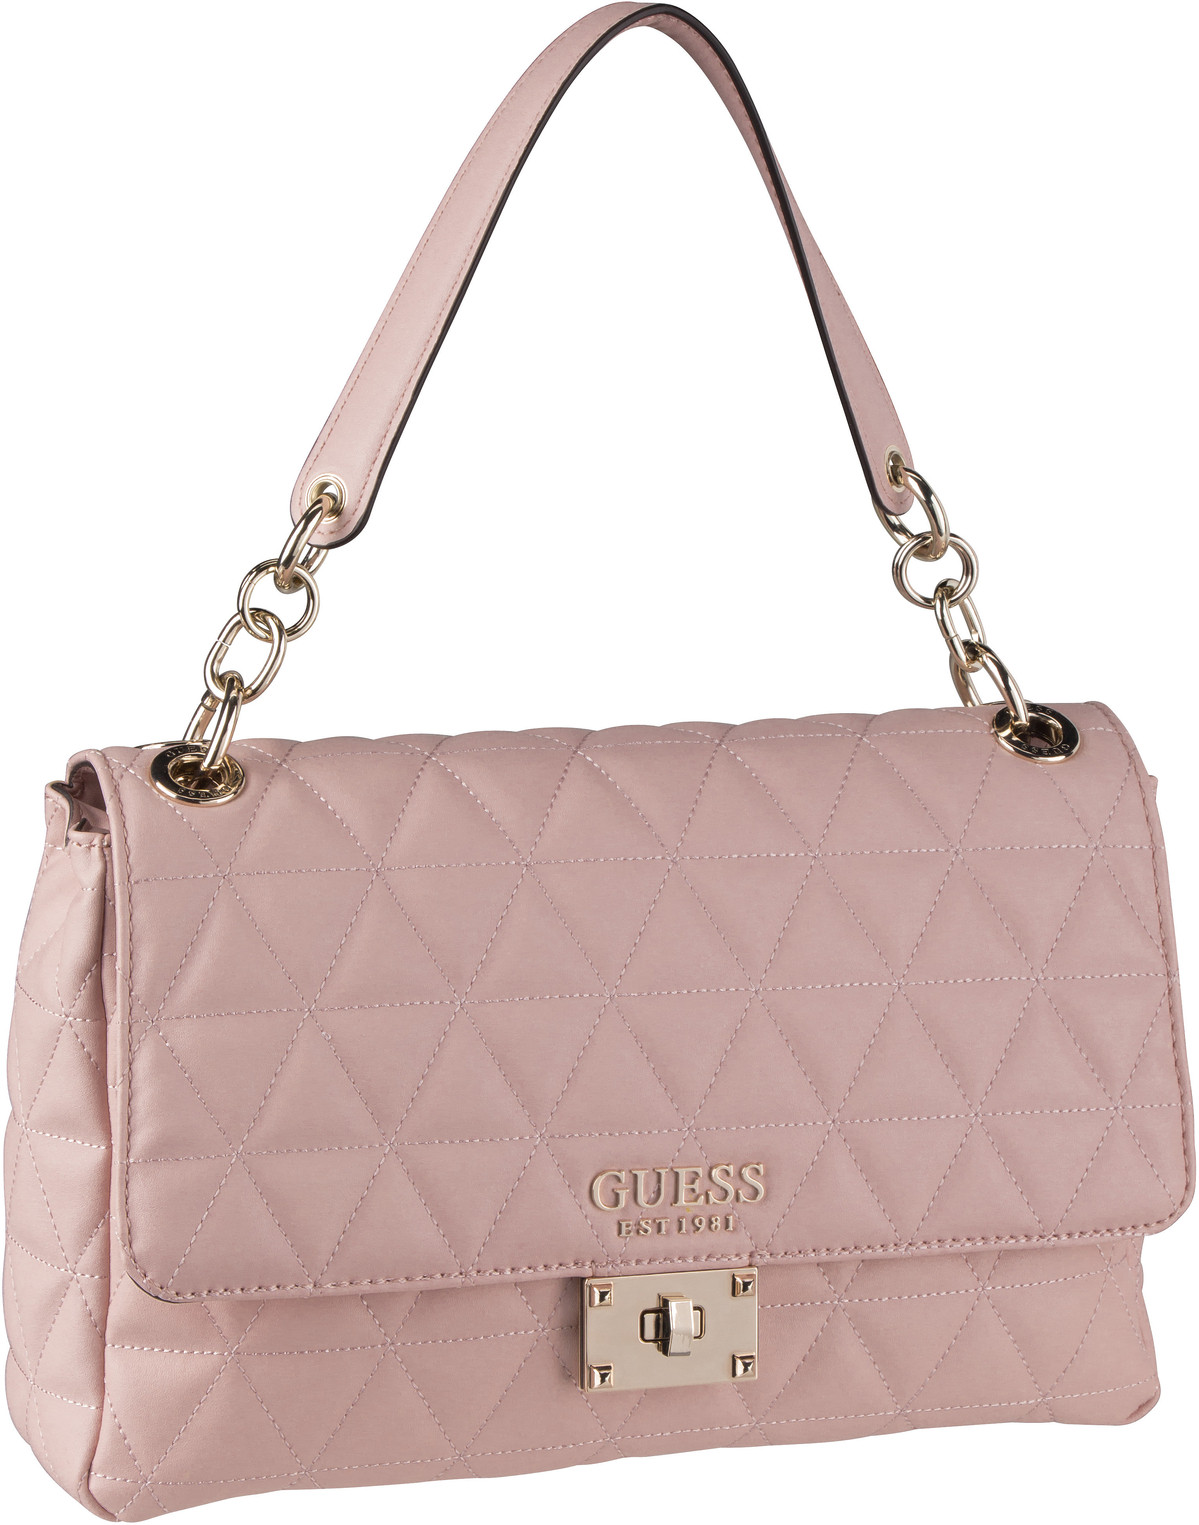 Handtasche Laiken Shoulderbag Blush